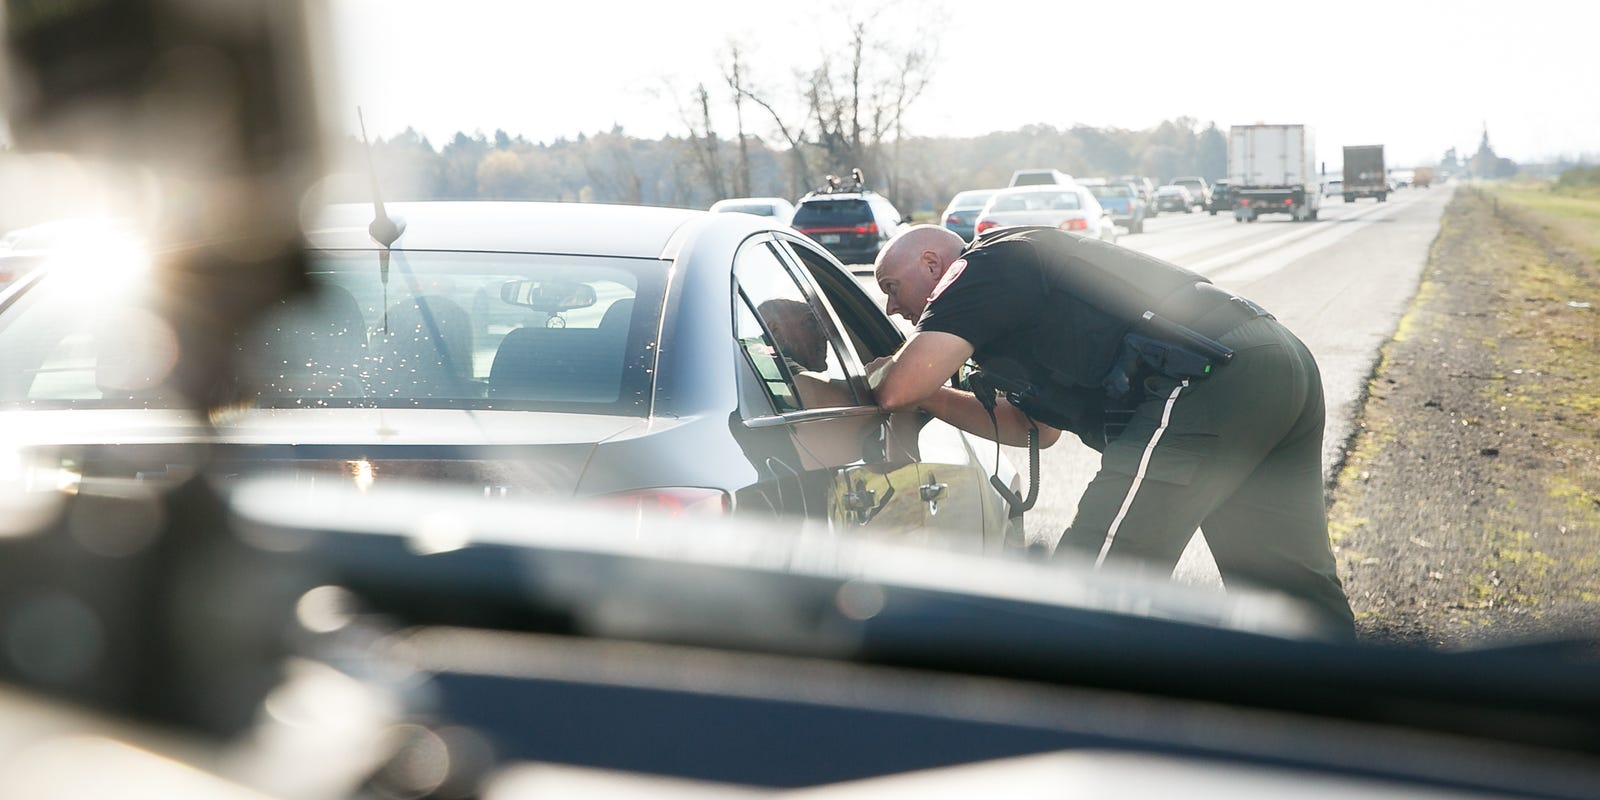 Study: Oregon has nation's strictest distracted driving laws